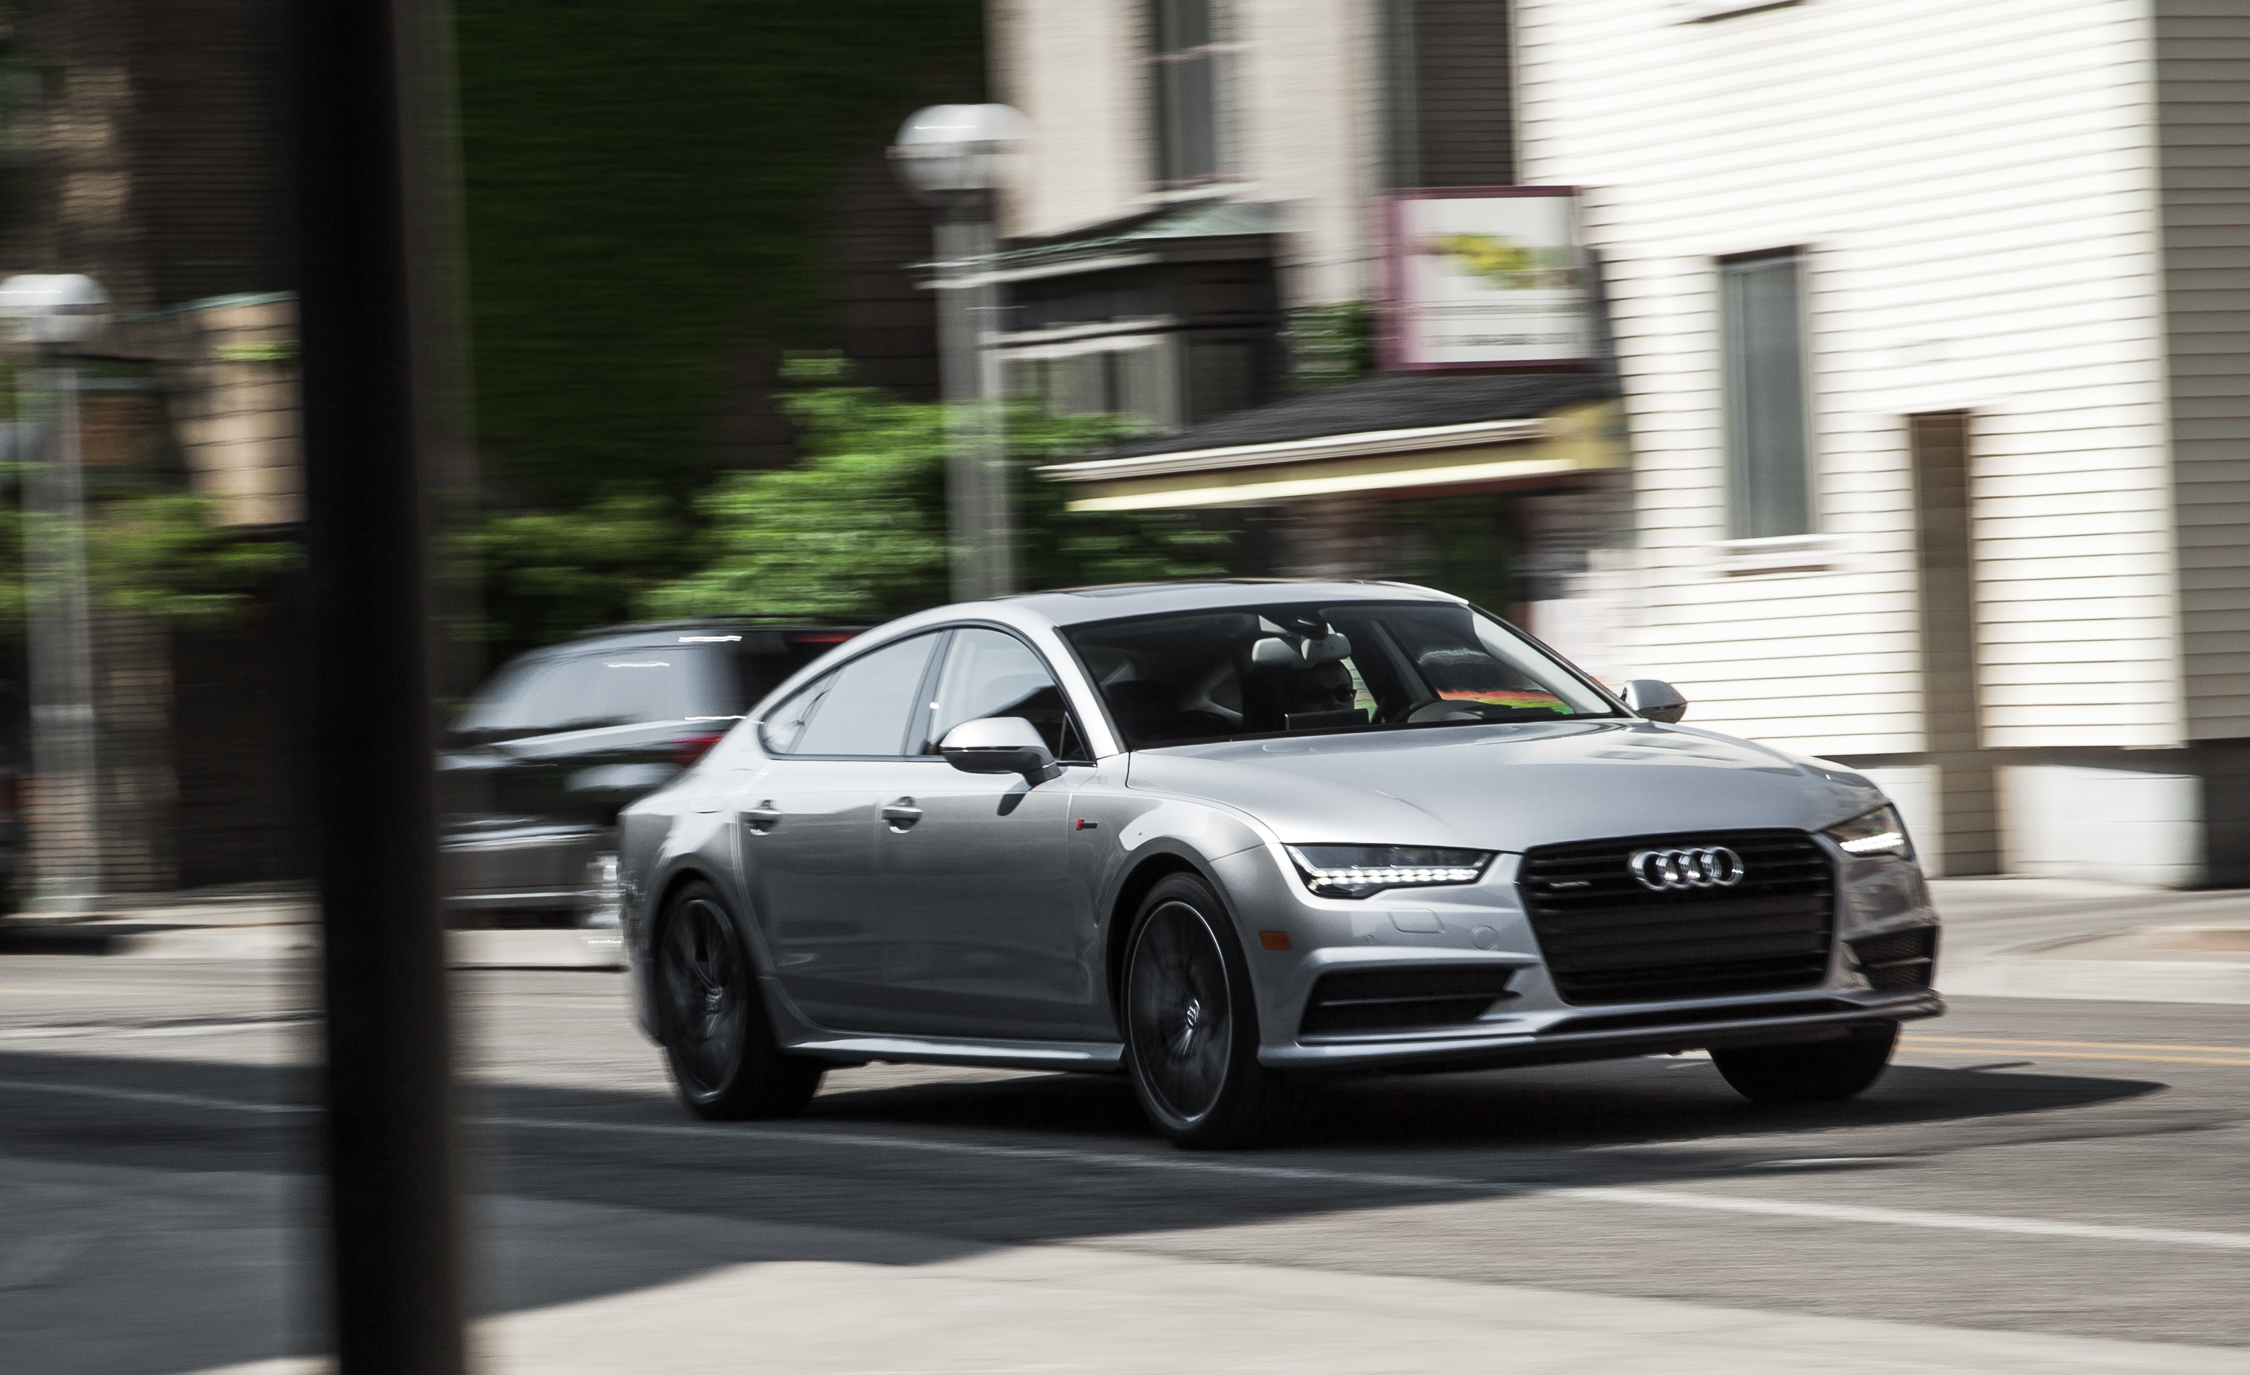 Audi A7 (View 3 of 26)